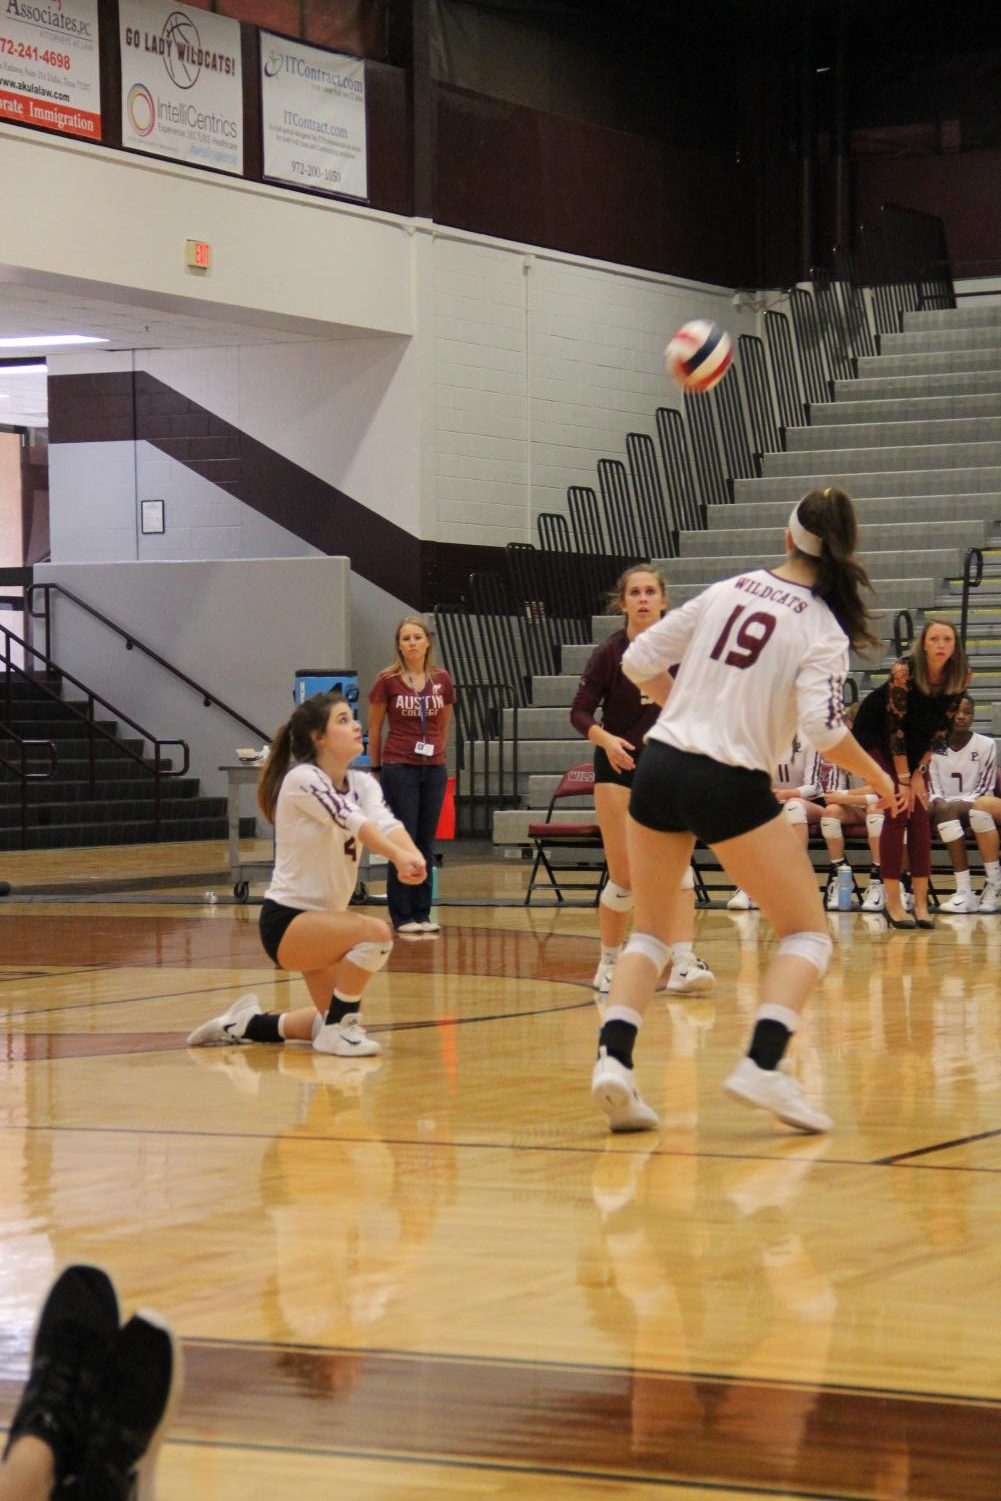 Junior Grace Glasscock (left) returns a serve and sophomore Kristen Barnard (middle) and junior Rachel Howes (right) wait to assist.